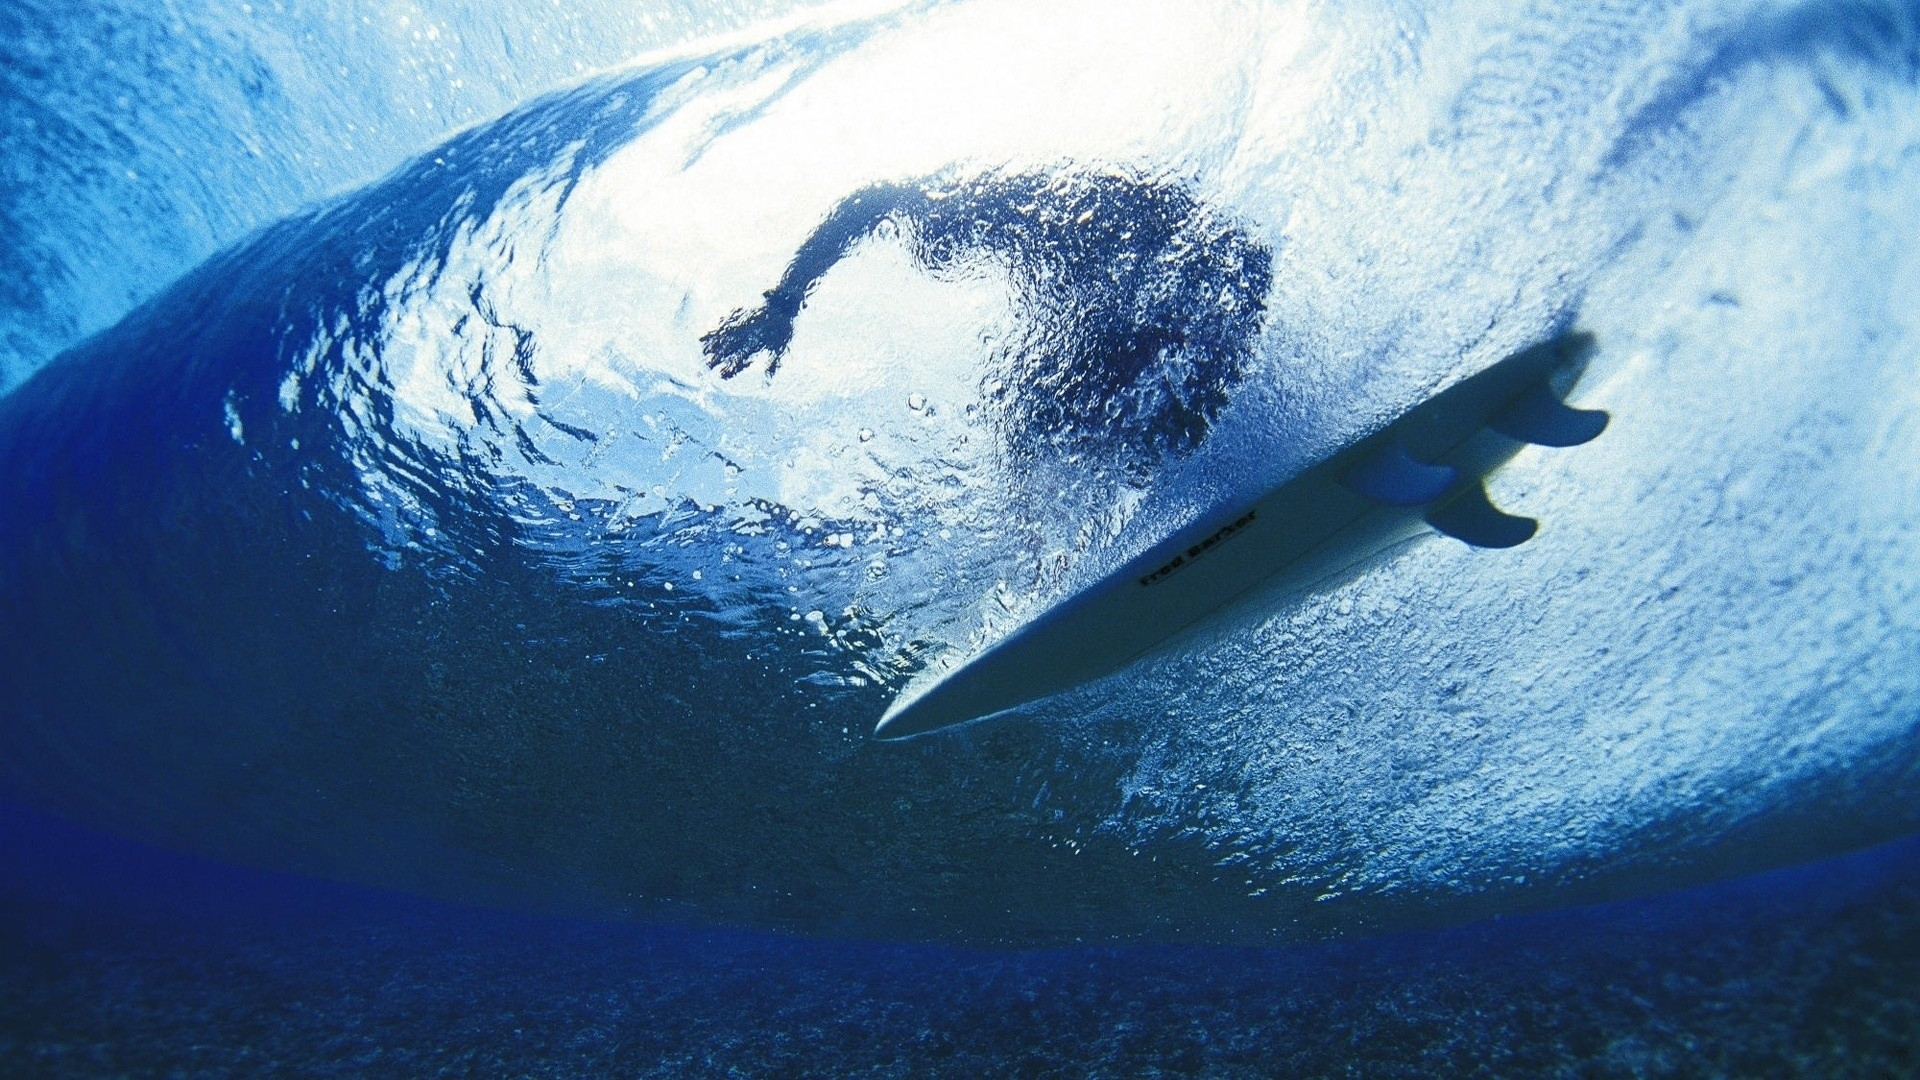 Preview wallpaper surfing, surfer, water, depth 1920×1080